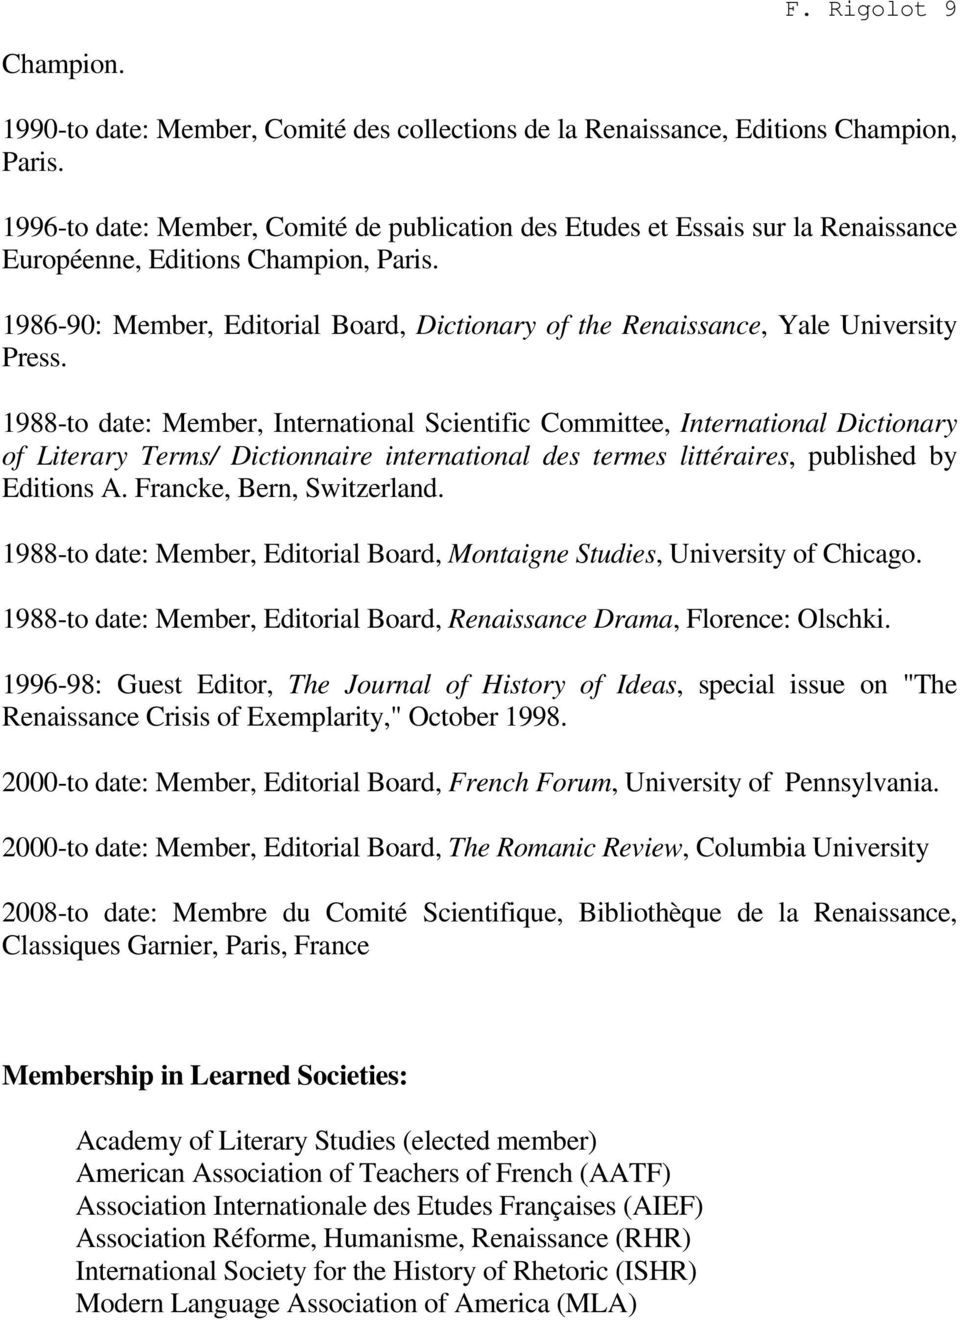 1986-90: Member, Editorial Board, Dictionary of the Renaissance, Yale University Press.